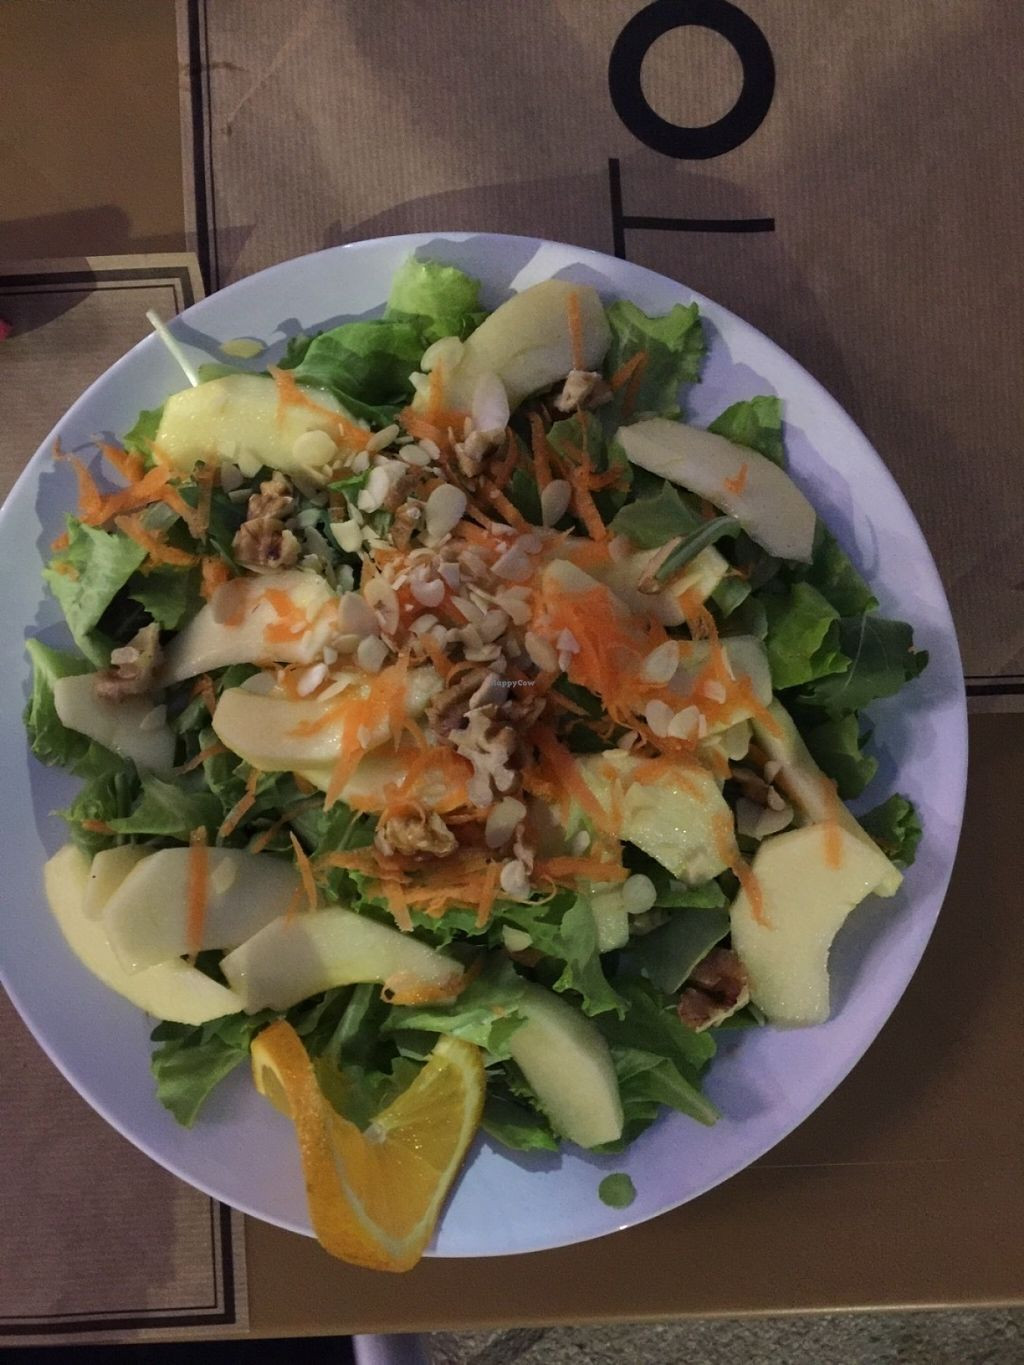 "Photo of I Toscani  by <a href=""/members/profile/AmandaAttard"">AmandaAttard</a> <br/>Apple & walnut salad <br/> July 25, 2016  - <a href='/contact/abuse/image/77042/162093'>Report</a>"